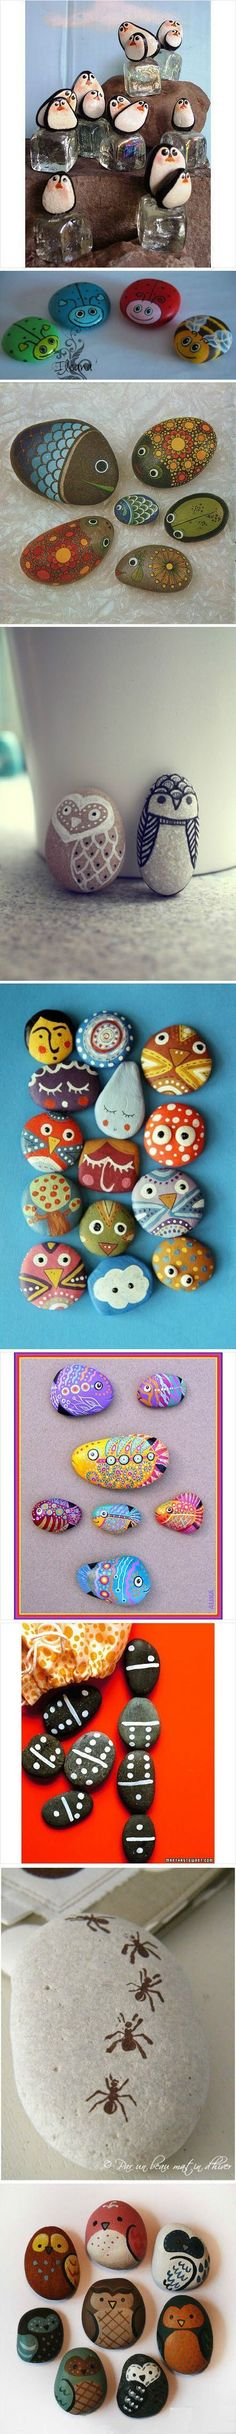 PEBBLE ART or ROCK ART - Great and very inexpensive activity for kids - (Okay - these were obviously done by adults so I admit I'm going to join in the fun!) - Fun and Creative